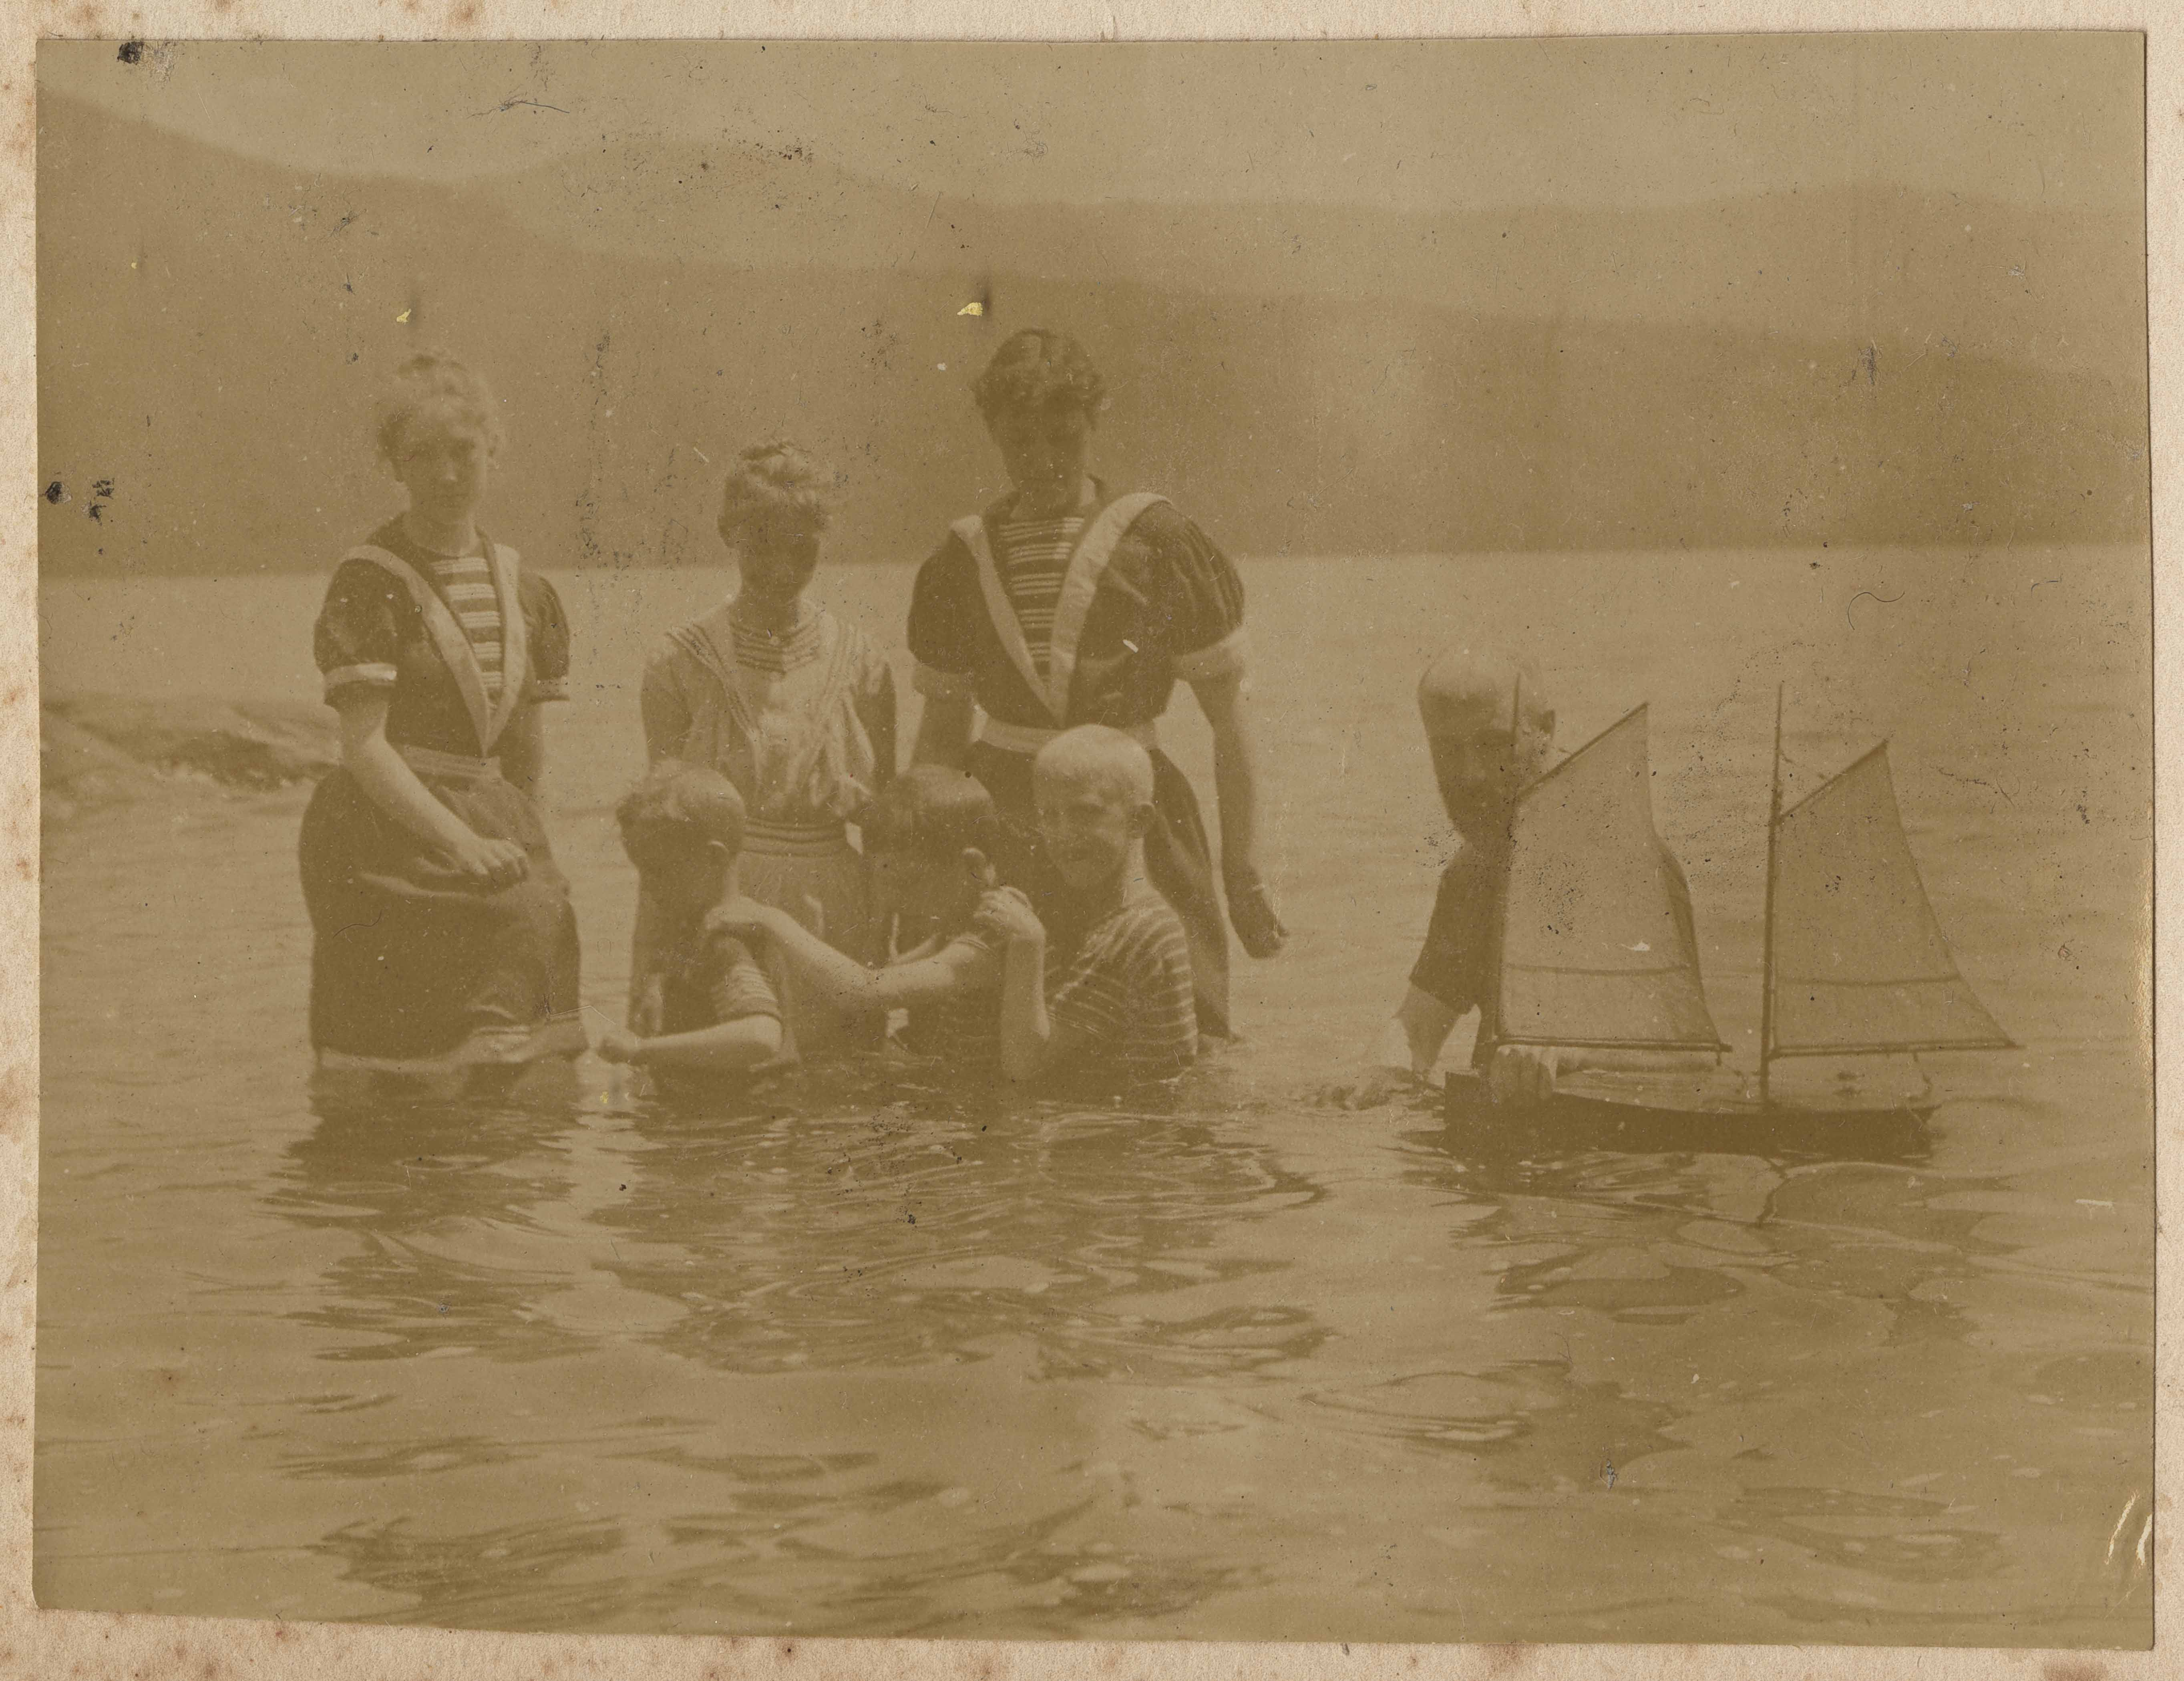 Children in swimsuits with model boat